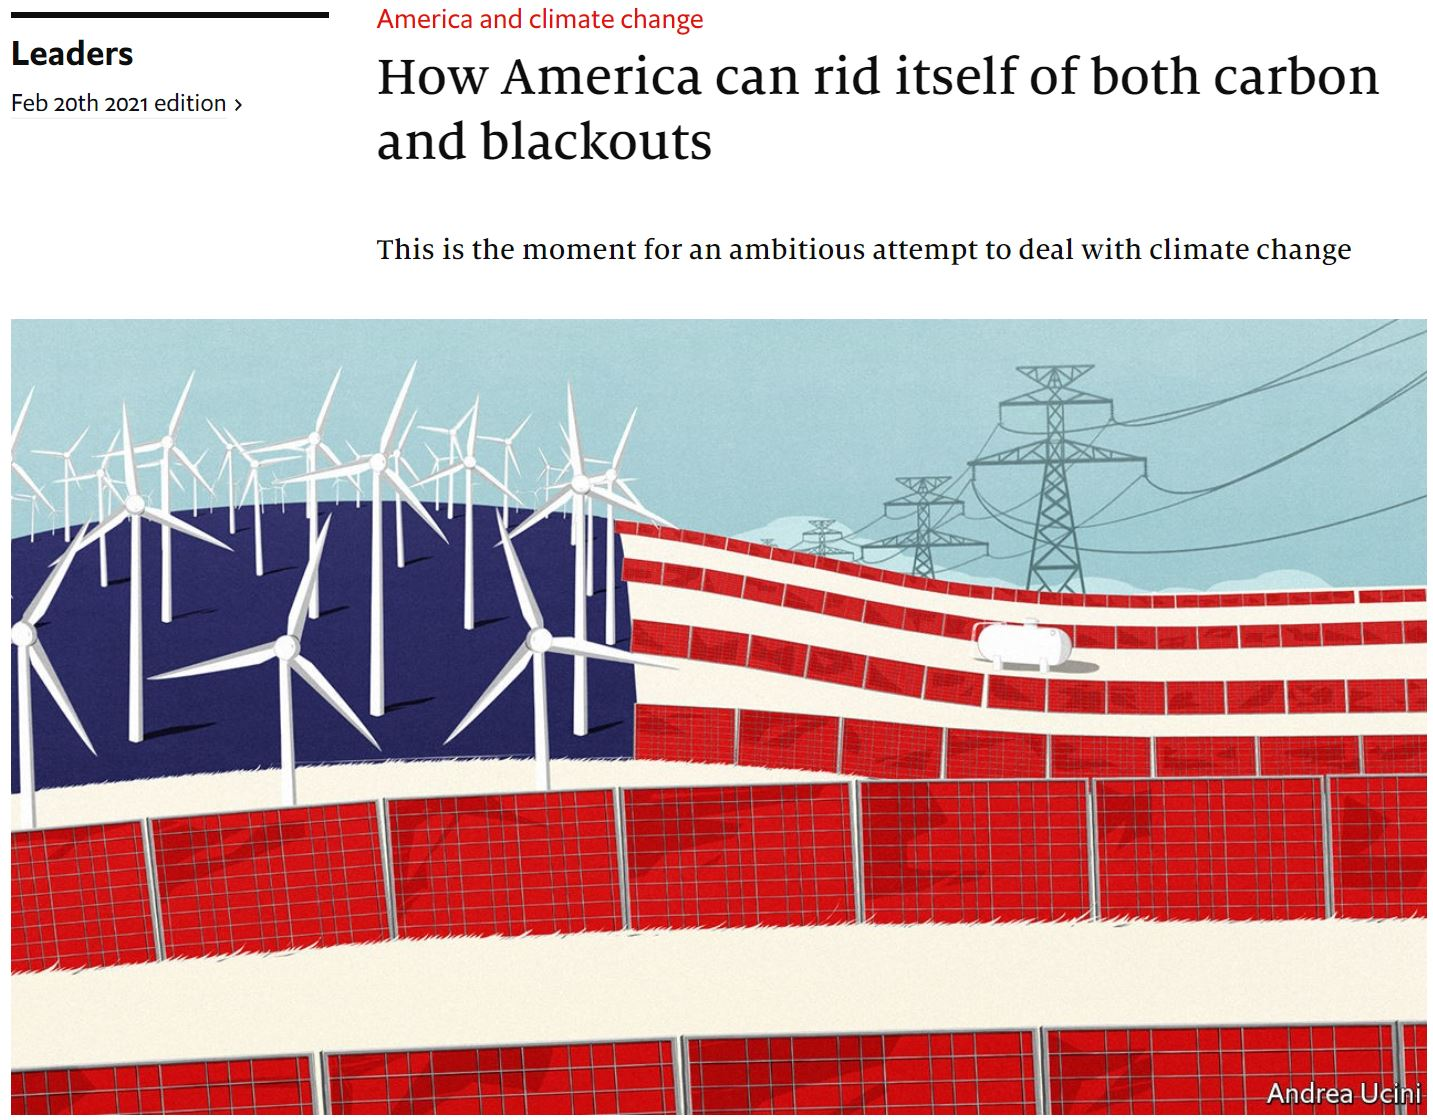 economist_2021-02-20-How America can rid itself of both carbon and blackouts